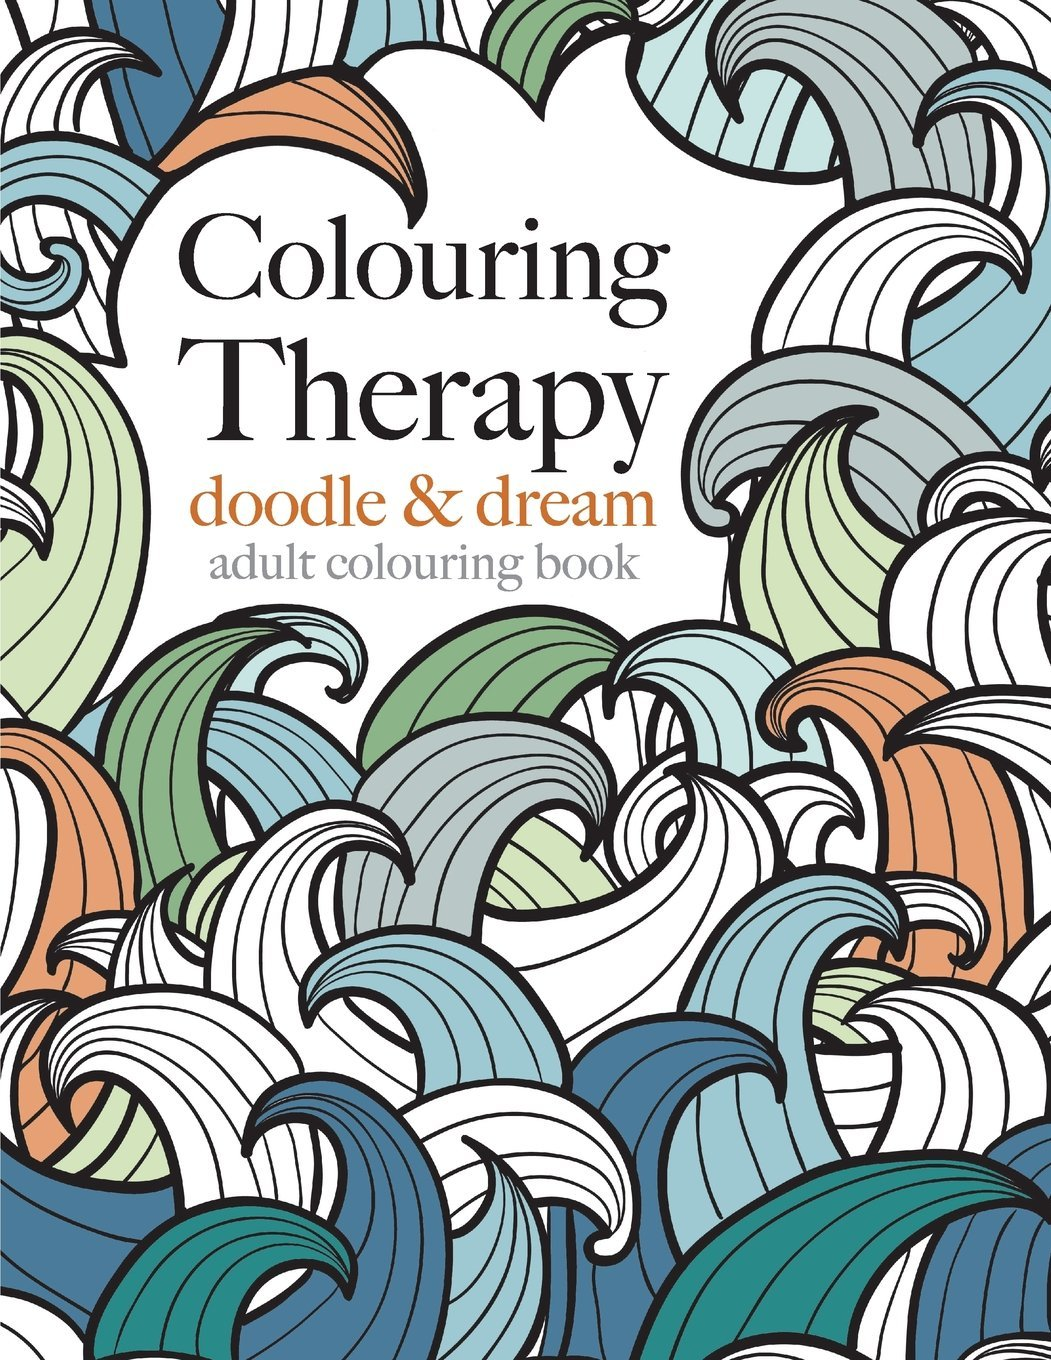 colouring therapy doodle dream anti stress colouring for all christina rose 9781910771150 amazoncom books - Colouring For All